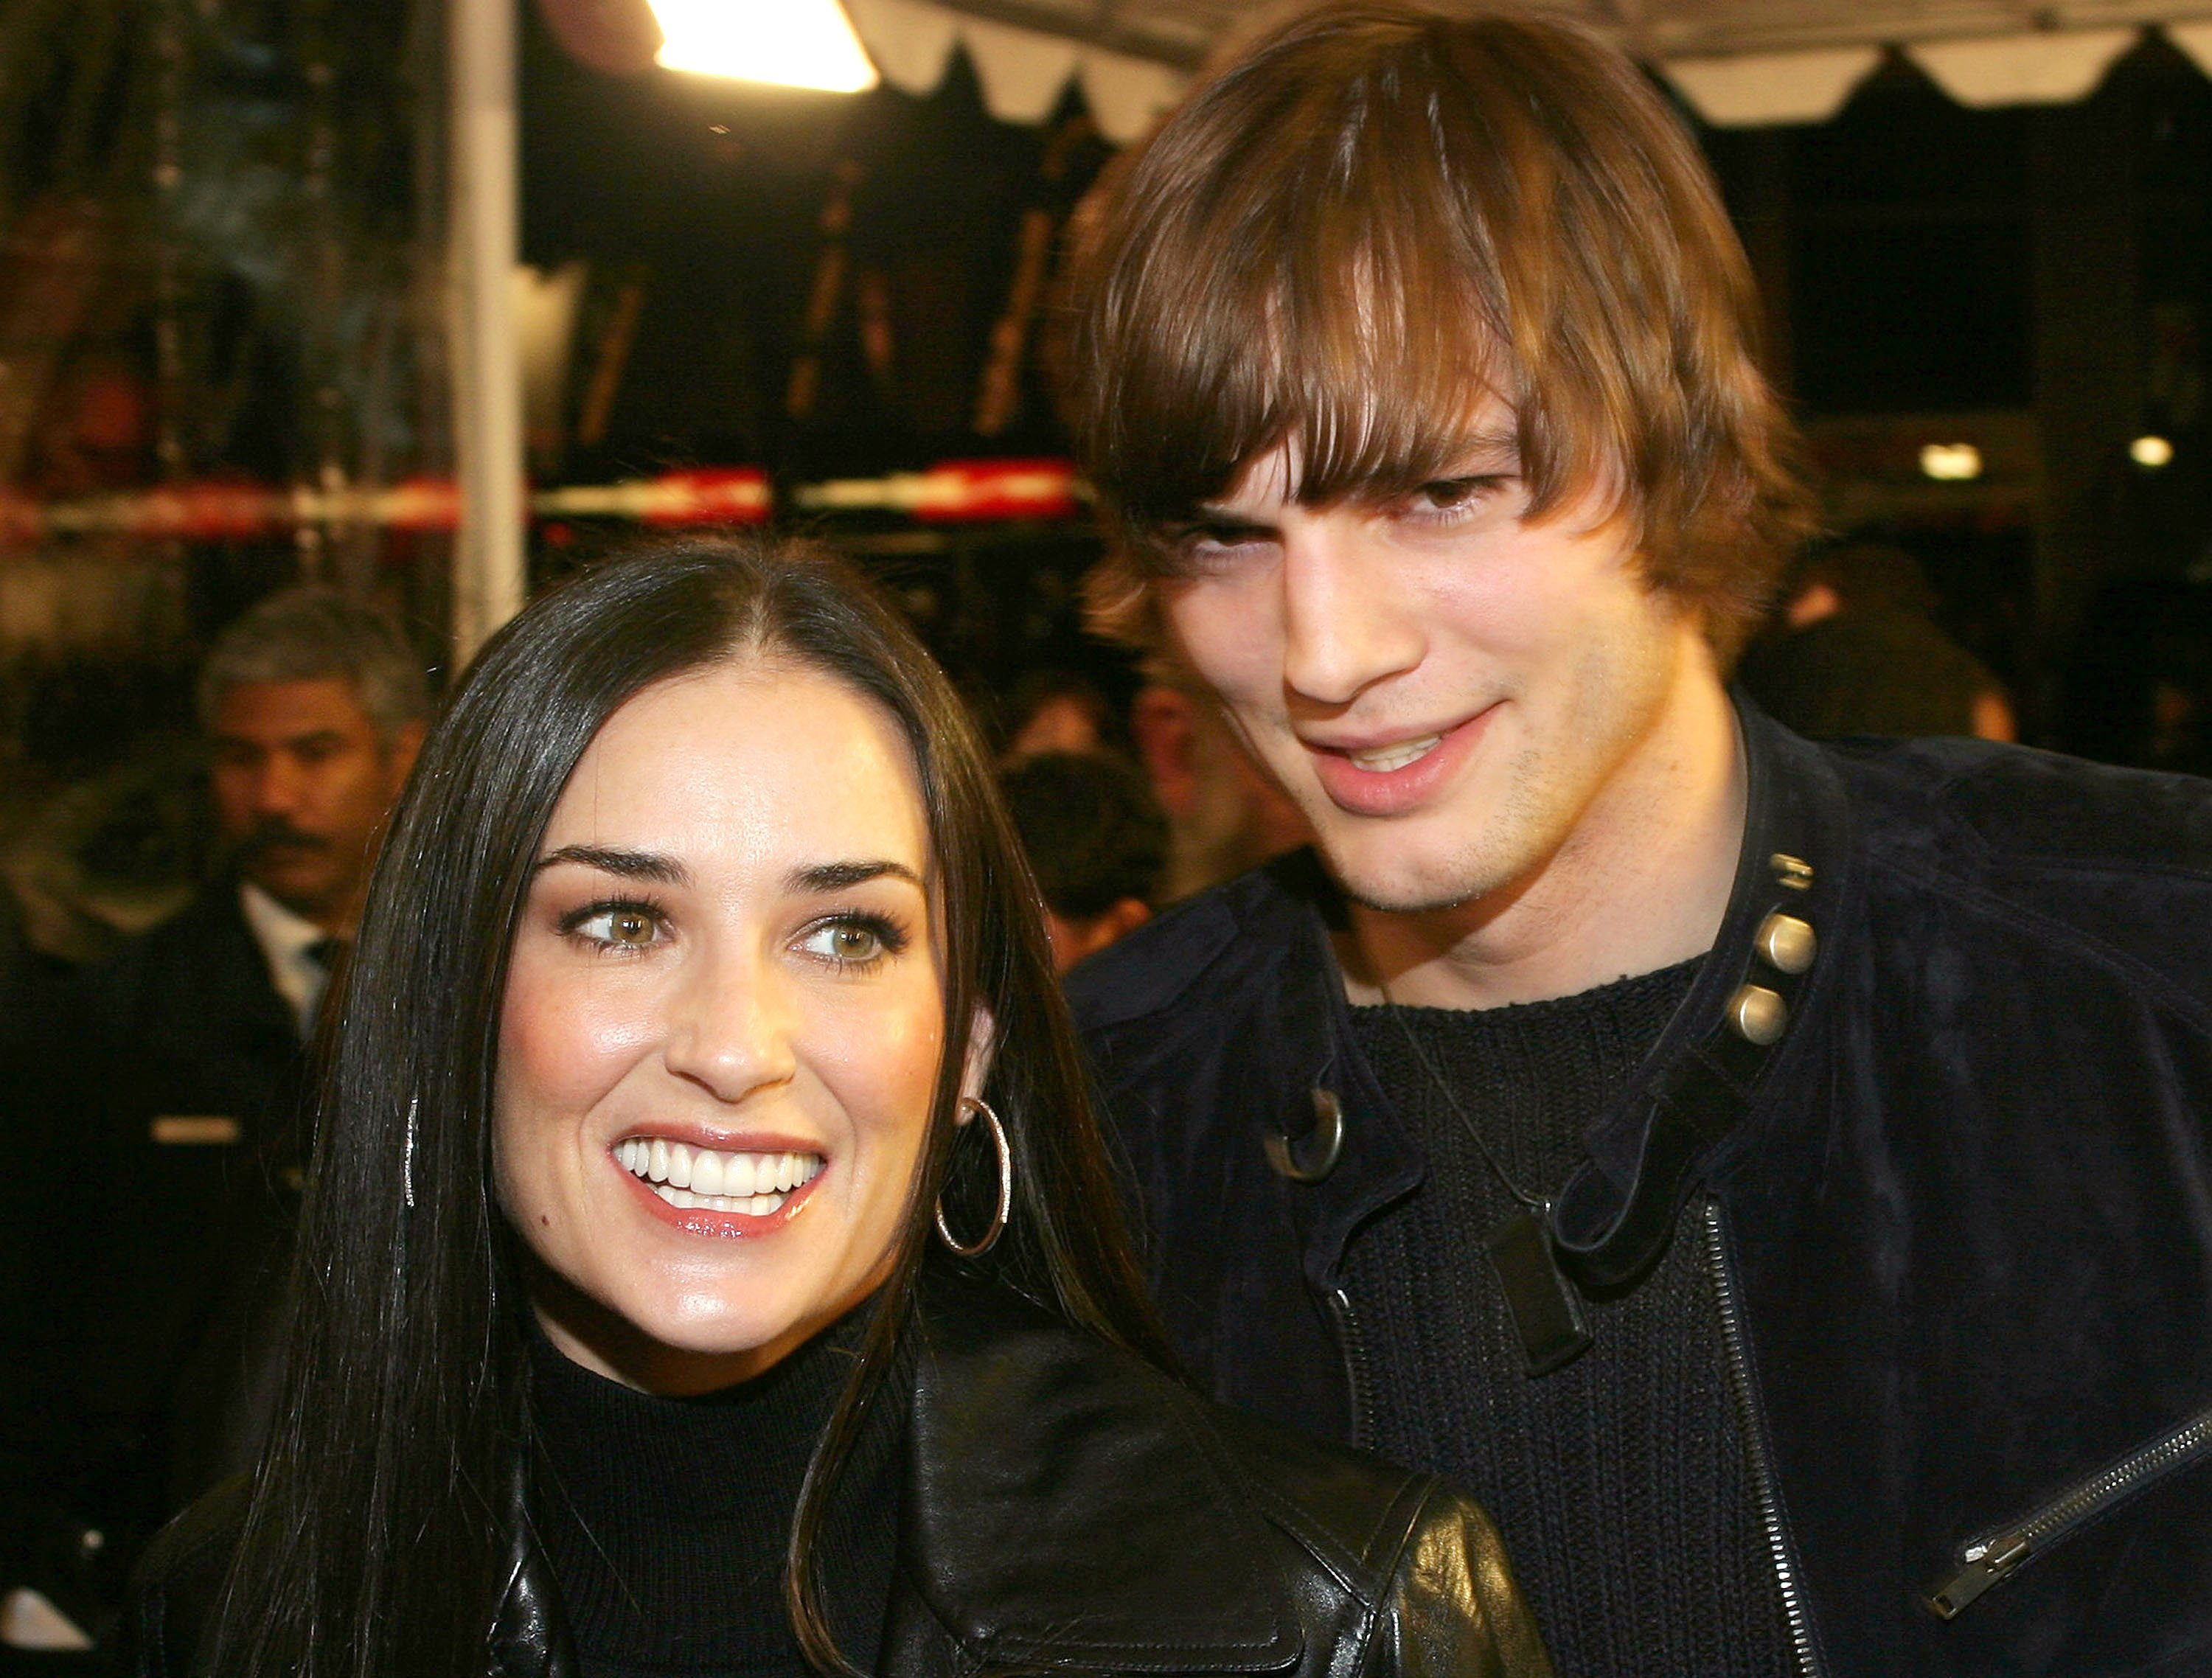 Ashton Kutcher and Demi Moore at the Cheaper By The Dozen Premiere December 14, 2003 | Photo: GettyImages